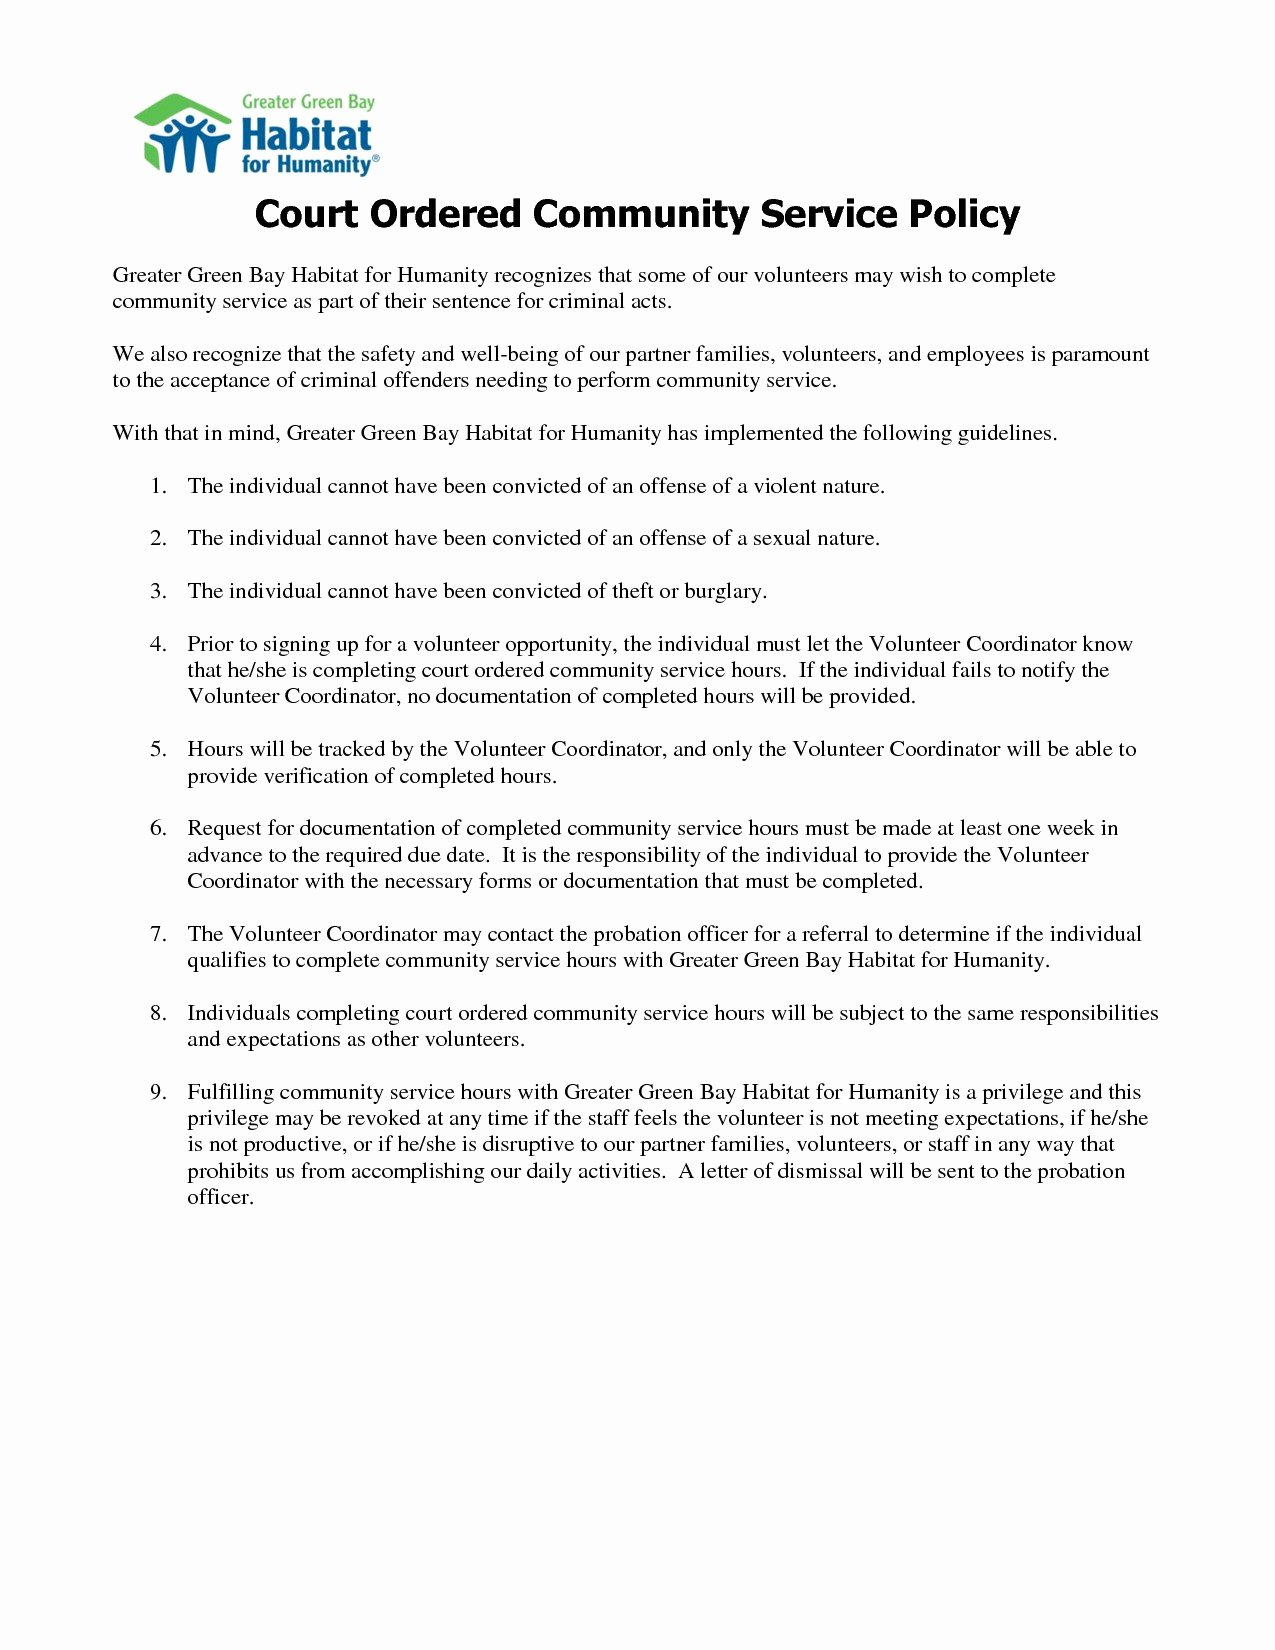 Community Service Letter Template Awesome Court ordered Munity Service Letter Template Download